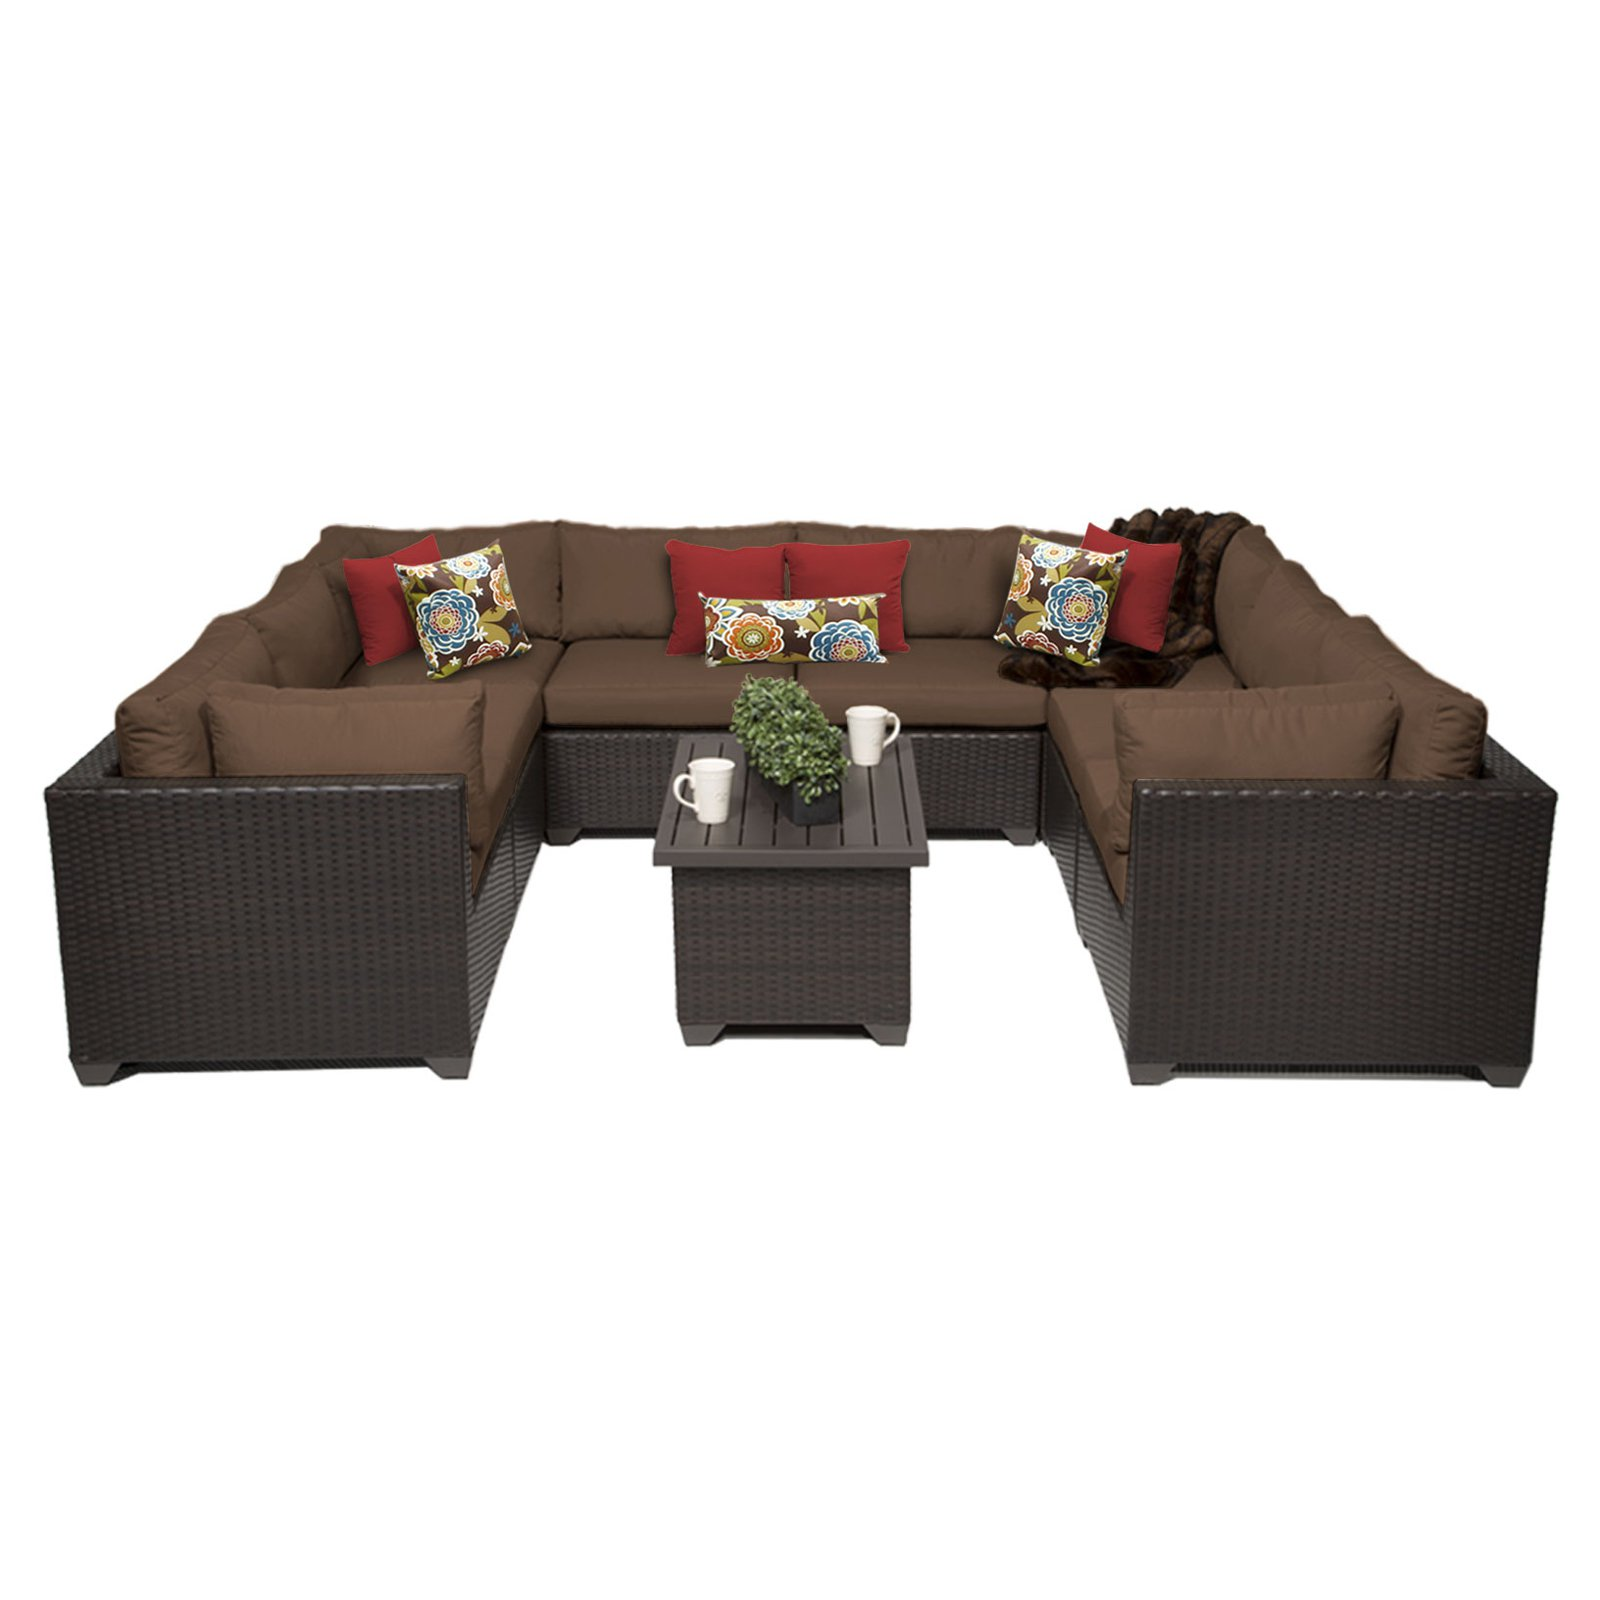 tk classics belle wicker 9 piece patio conversation set with 2 sets of cushion covers